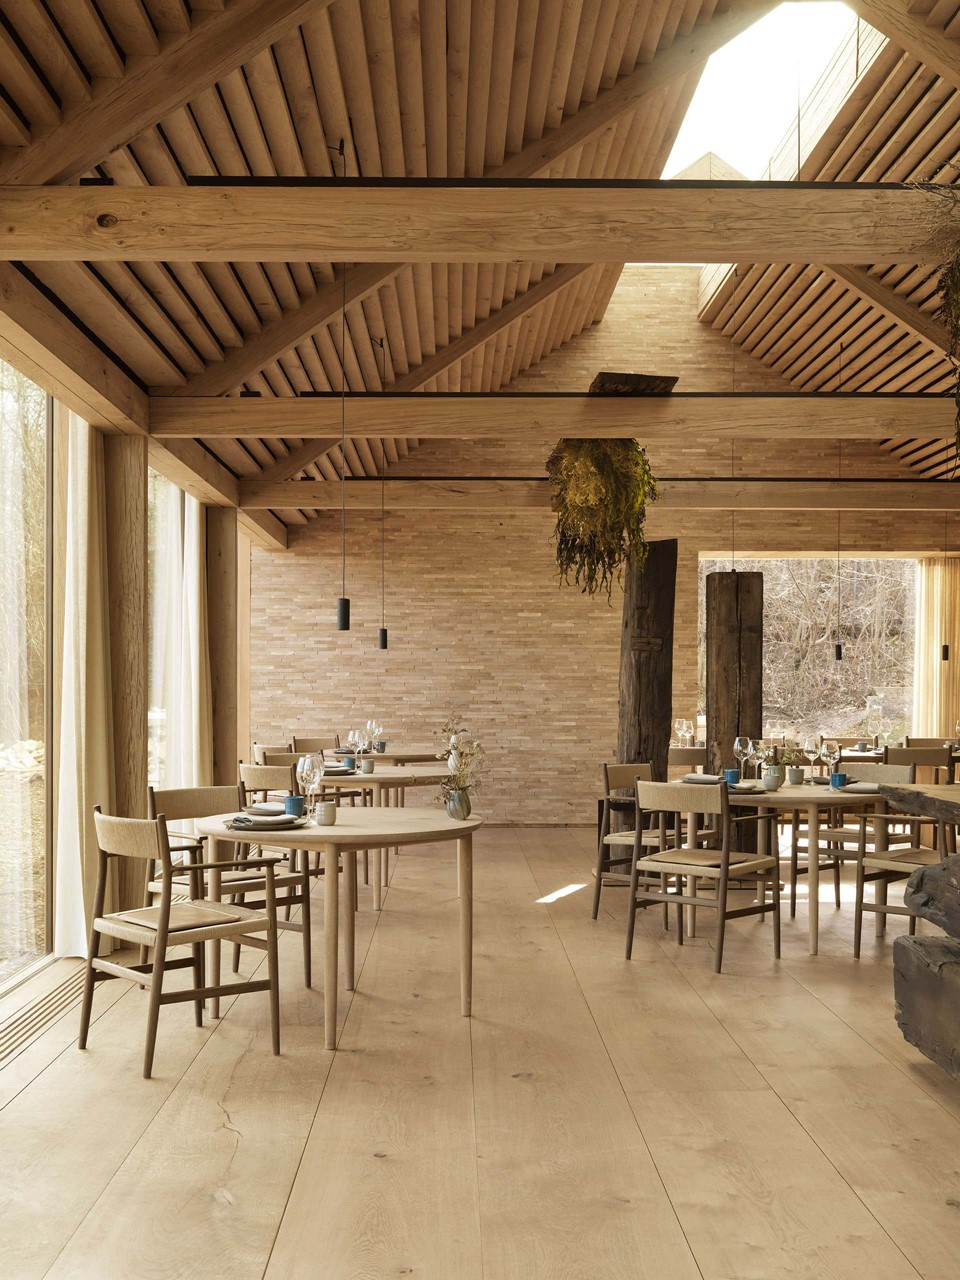 wide-oak-planks-heartoak_noma_main-dining_bjarke-ingels-group_dinesen.jpg